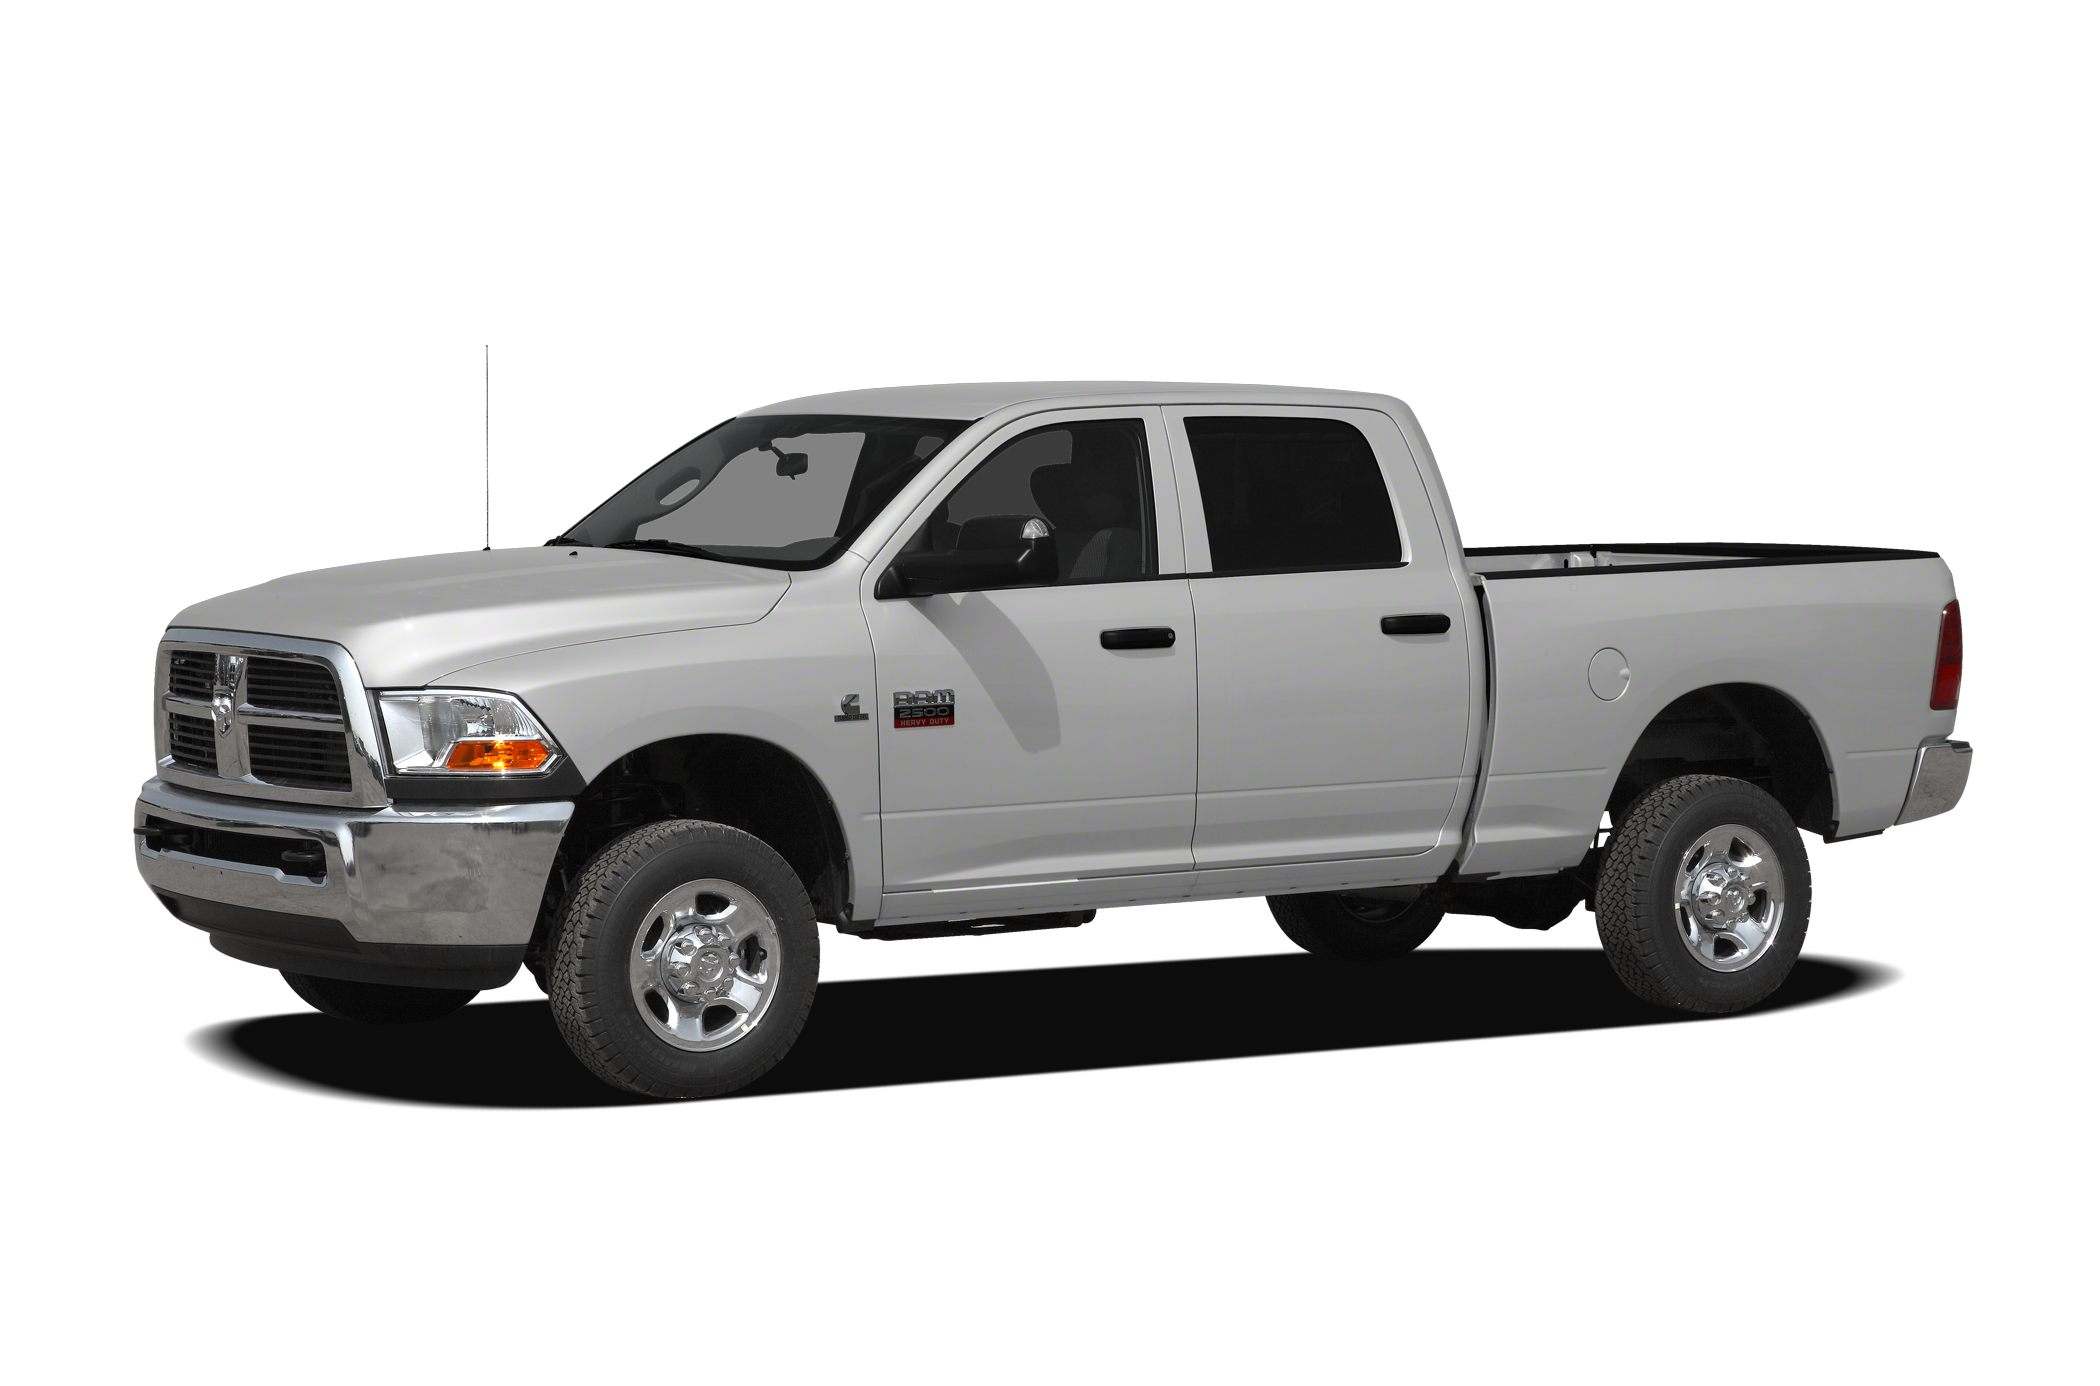 2011 Dodge Ram 2500 Laramie Crew Cab Pickup for sale in Chickasha for $41,368 with 75,035 miles